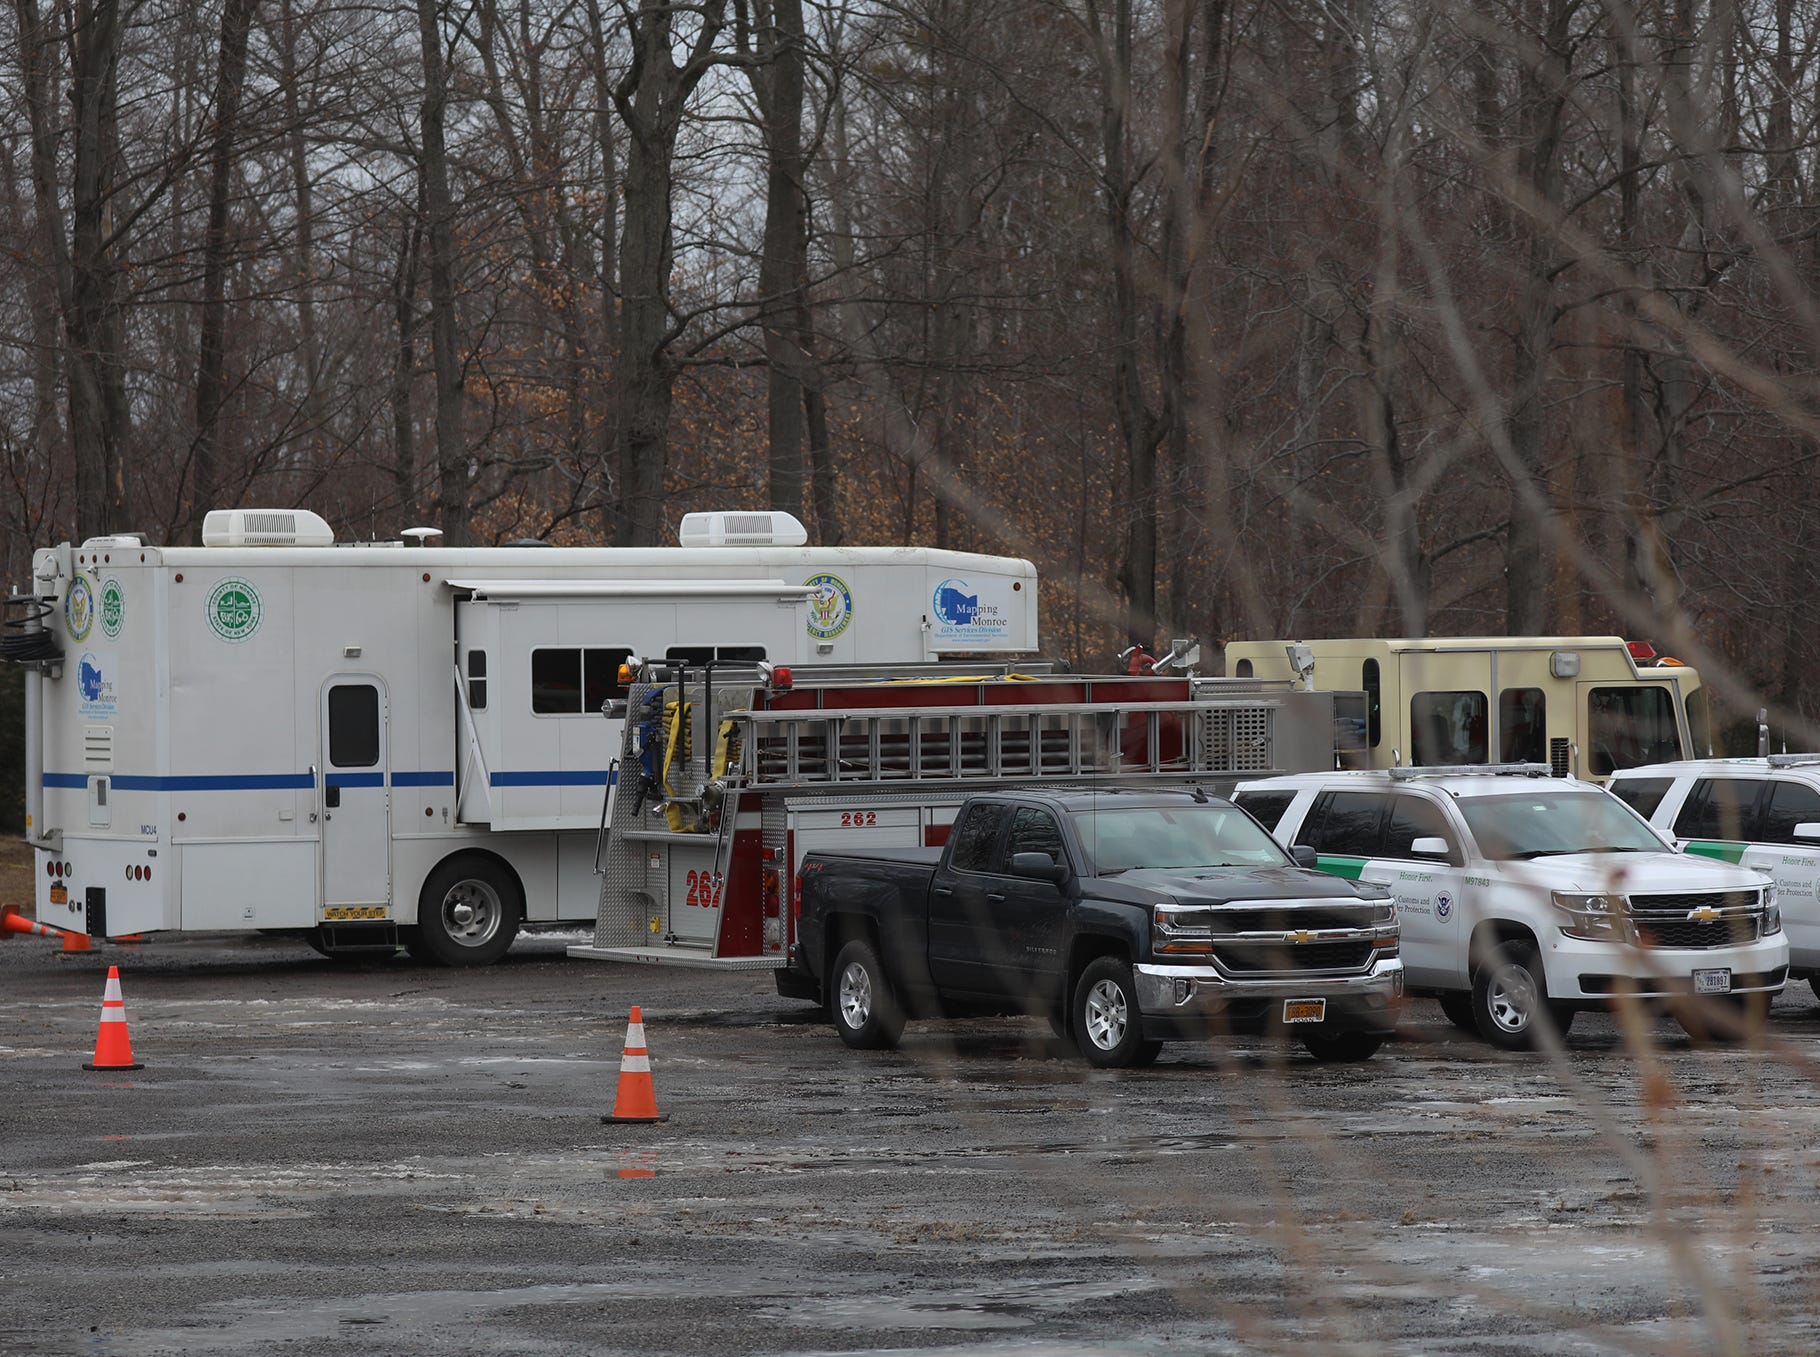 NYS Police, NYS Park Police, NYS Forest Rangers, Border Patrol, Hamlin Fire Dept., and Monroe County Emergency Operations are some of the emergency personnel assisting in the search.